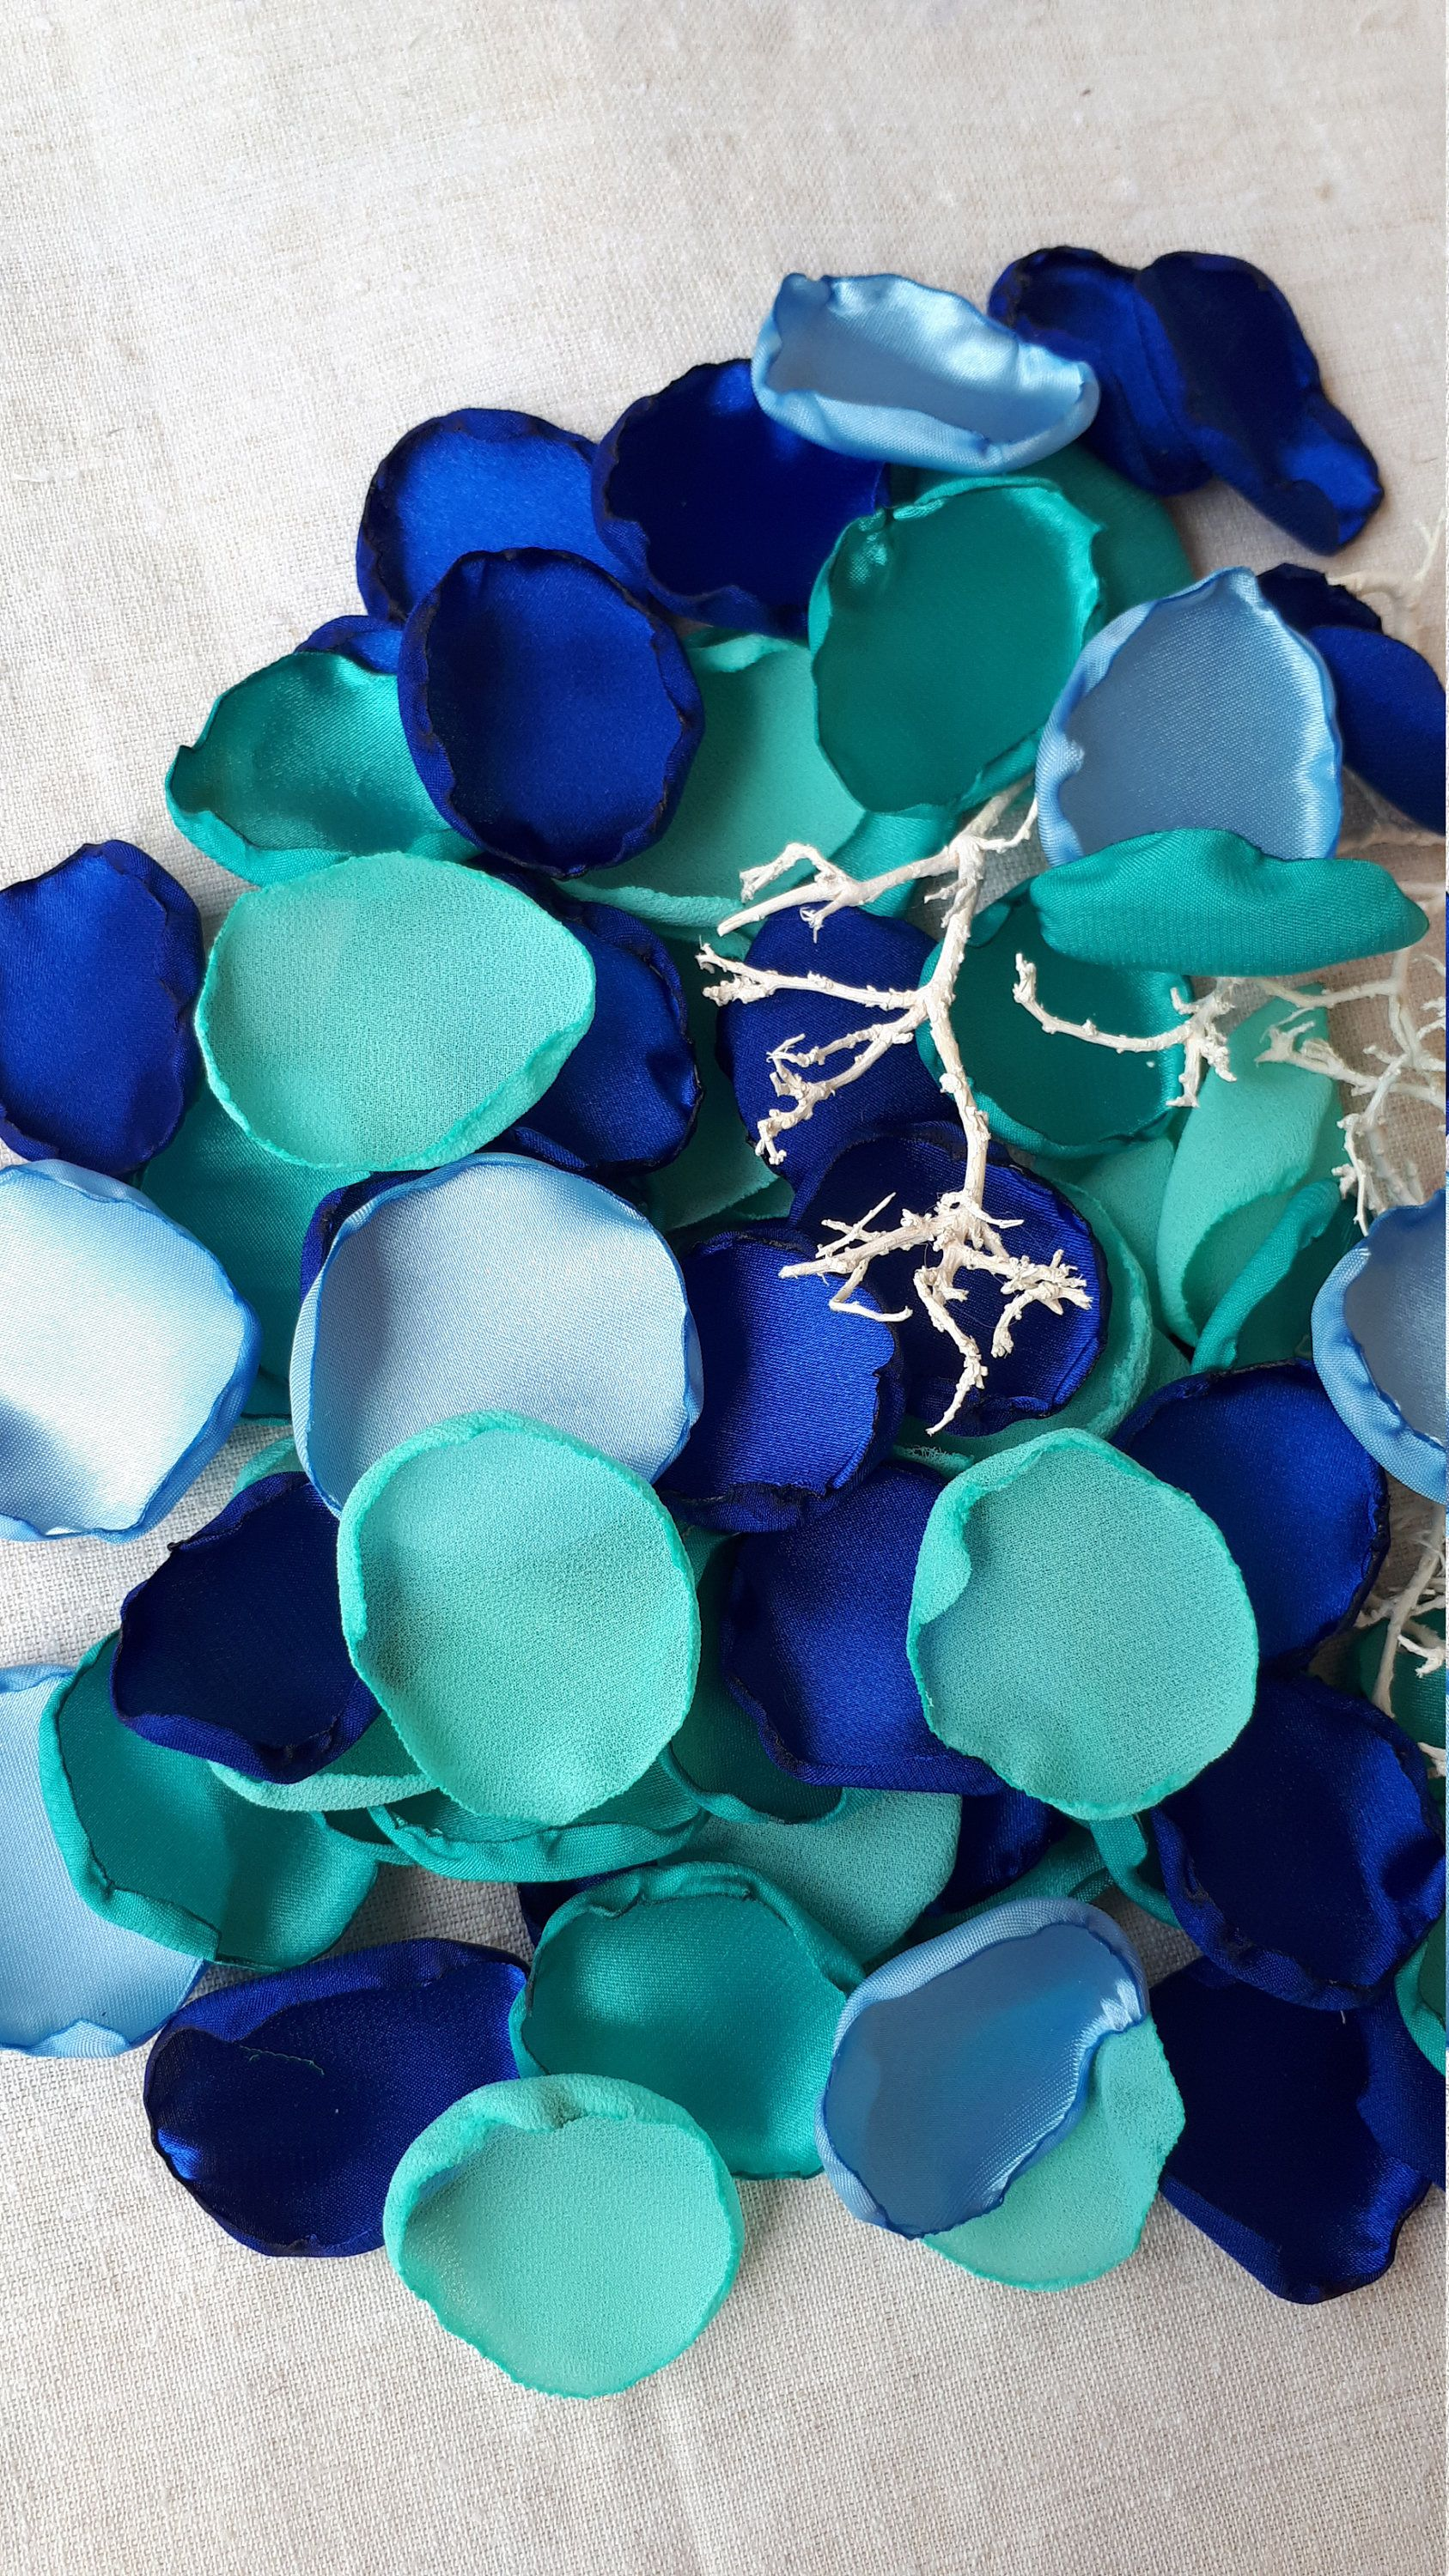 Mermaid turquoise navy blue sky blue flower petals handmeid flower wedding summer wedding beach dream wedding beach party flower petals blue izmirmasajfo